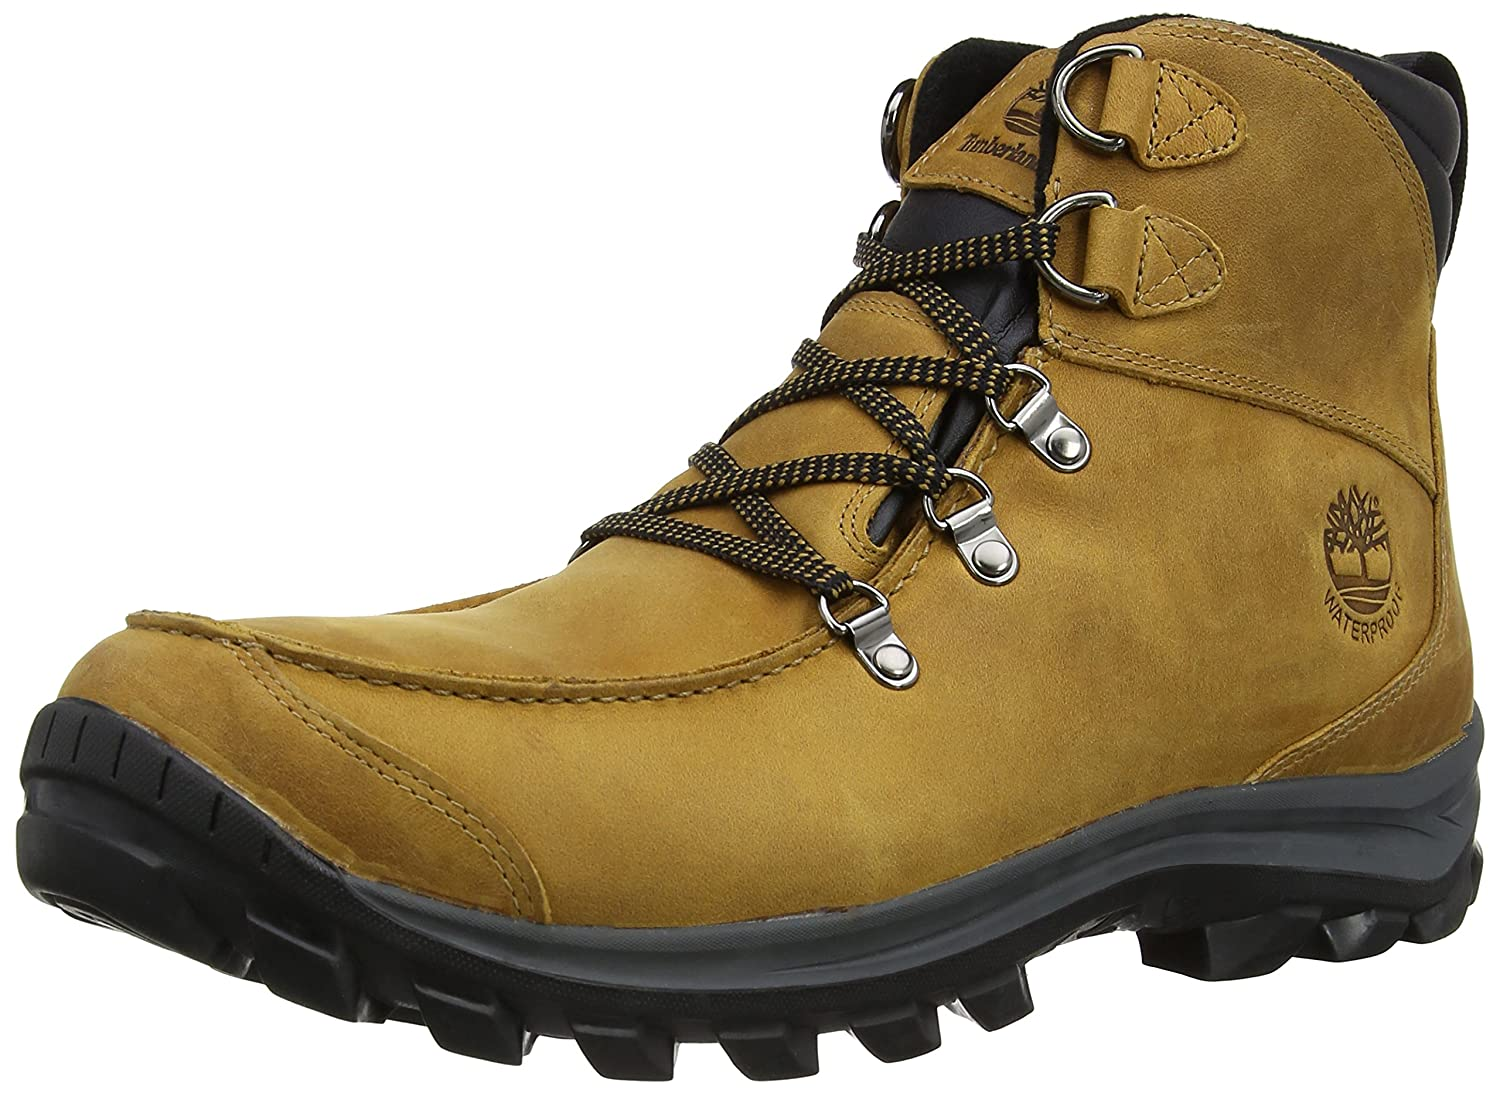 Timberland Men's Chillberg Mid Waterproof Boot Chillberg Mid Waterproof-M